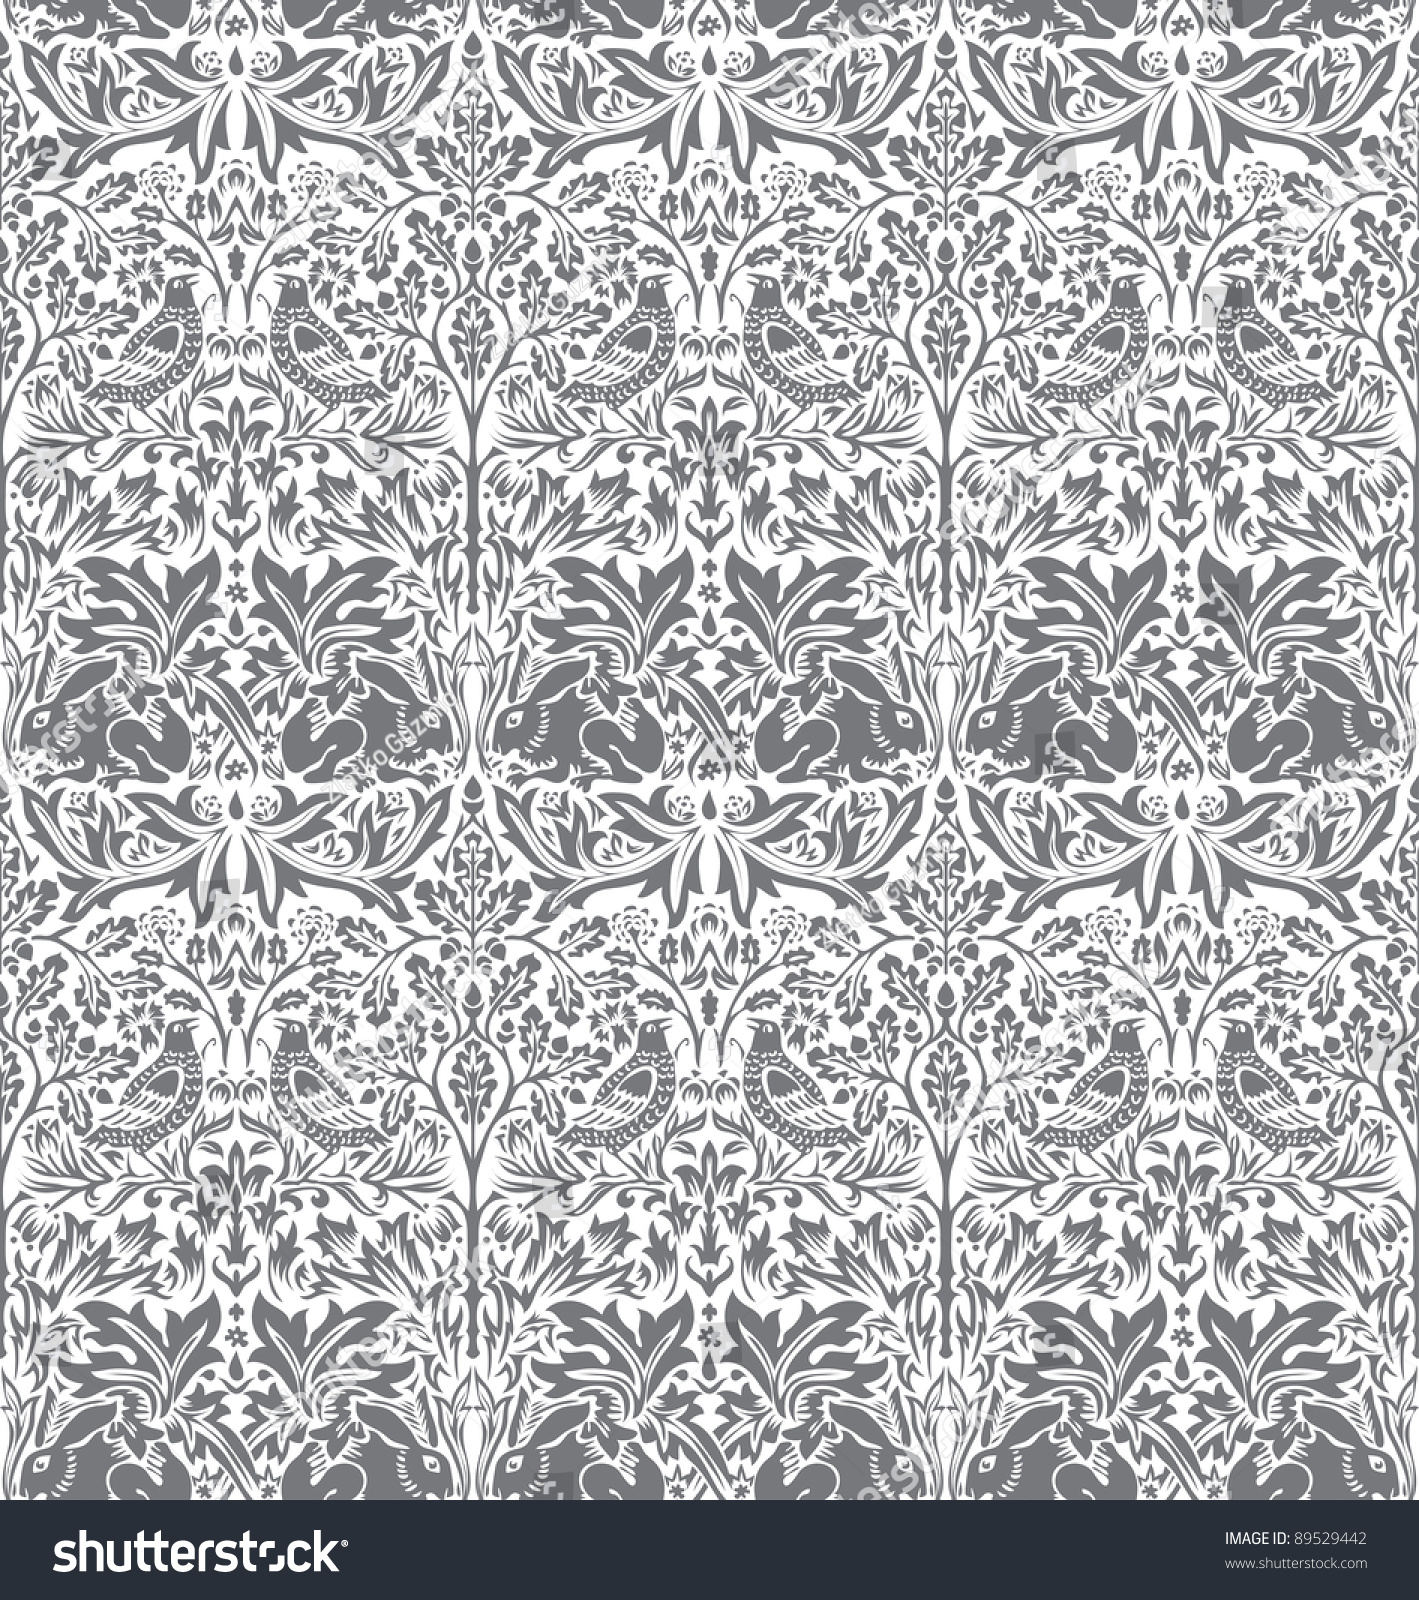 Vector Hand Drawn Wallpaper With Dove And Rabbit - 89529442 ...